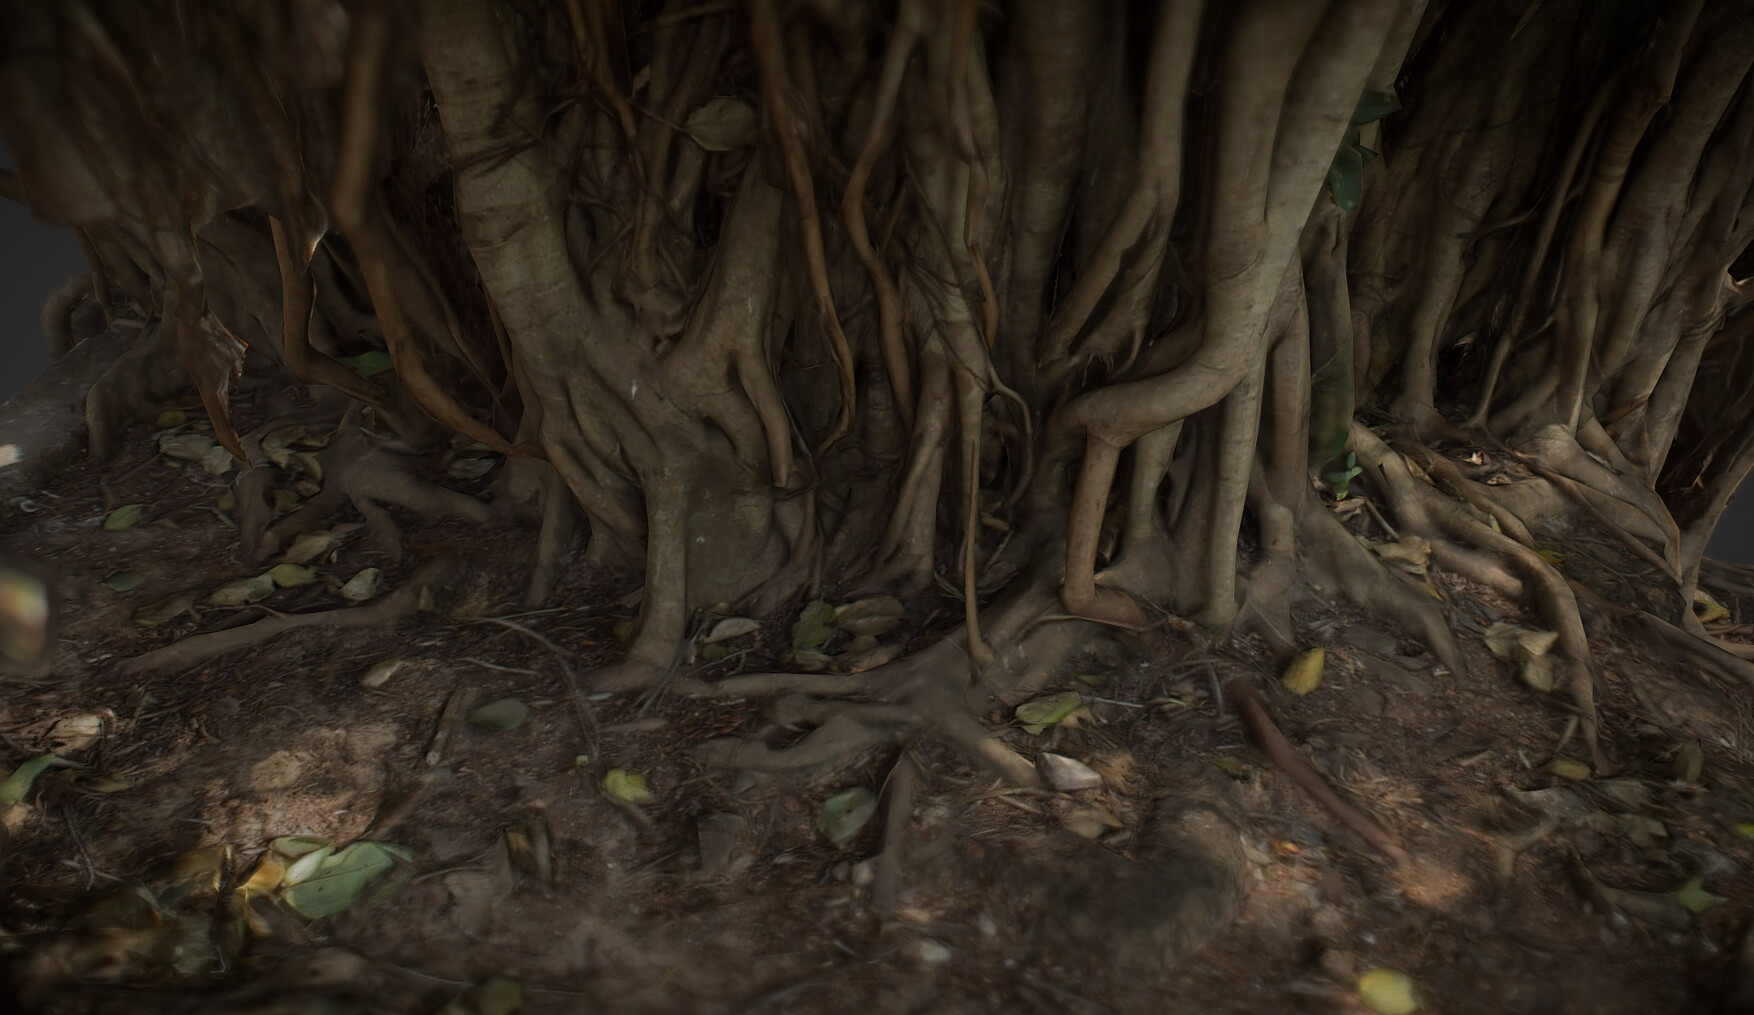 ArtStation - Big Banyan Tree, Dmytro Dokunov